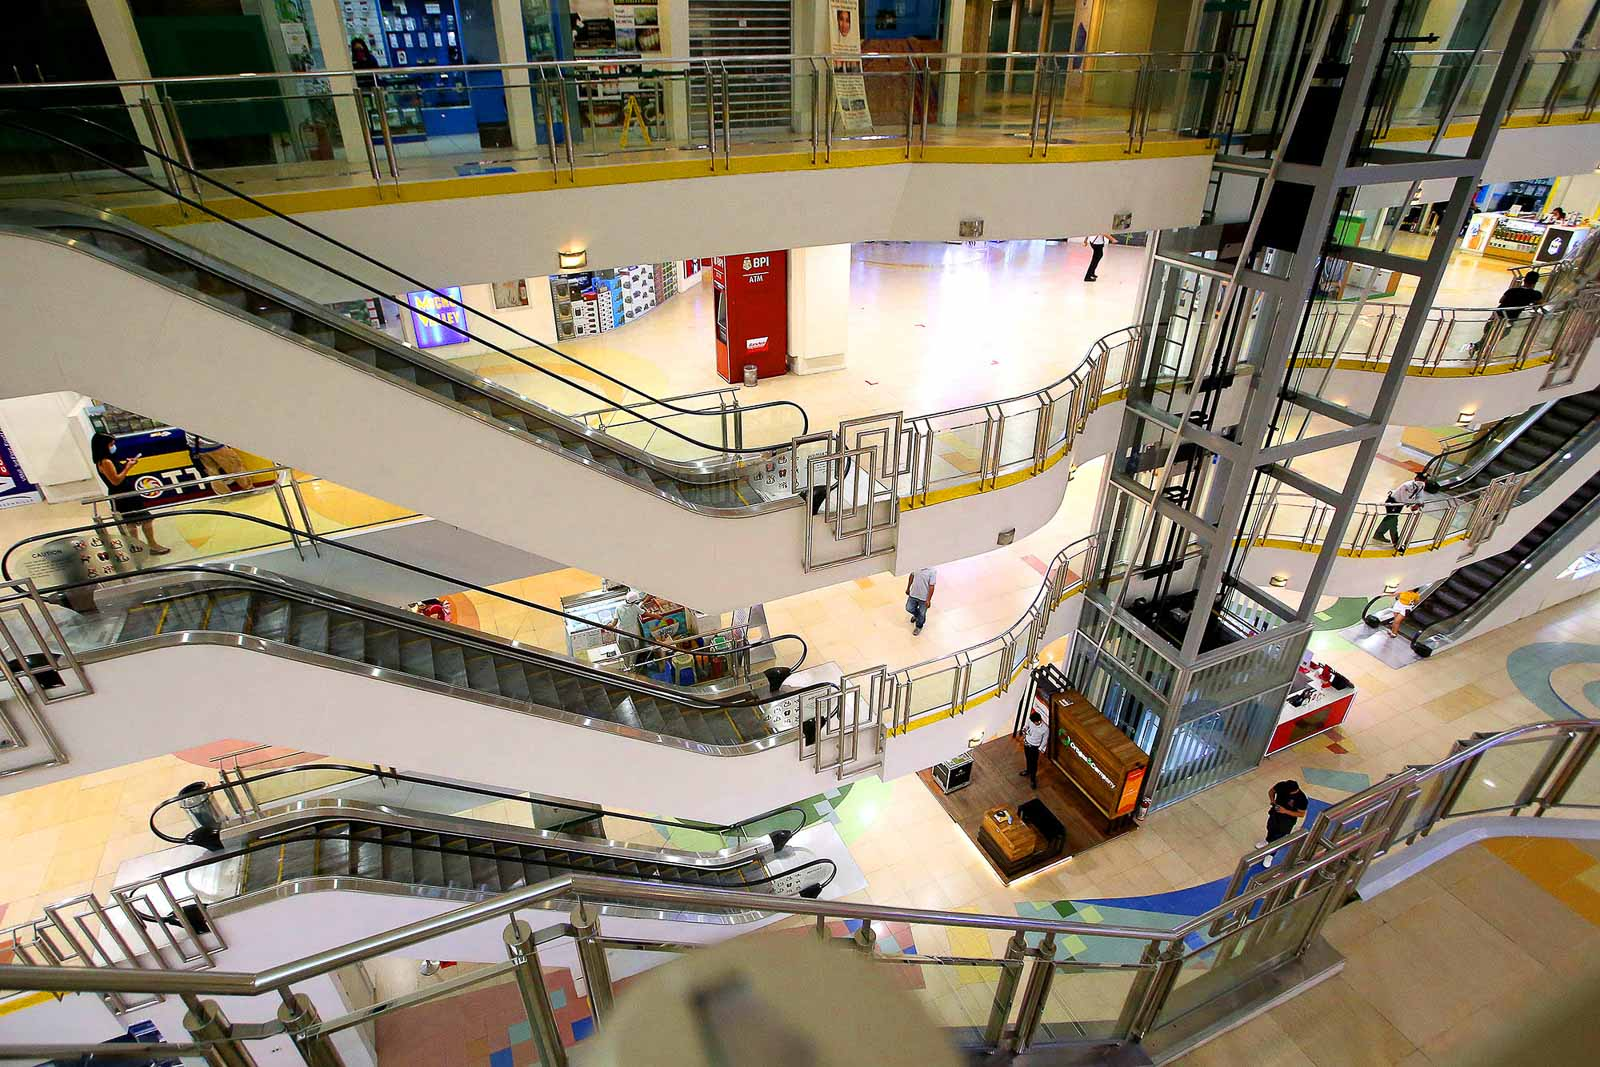 Malls in the Philippines news and updates | Rappler